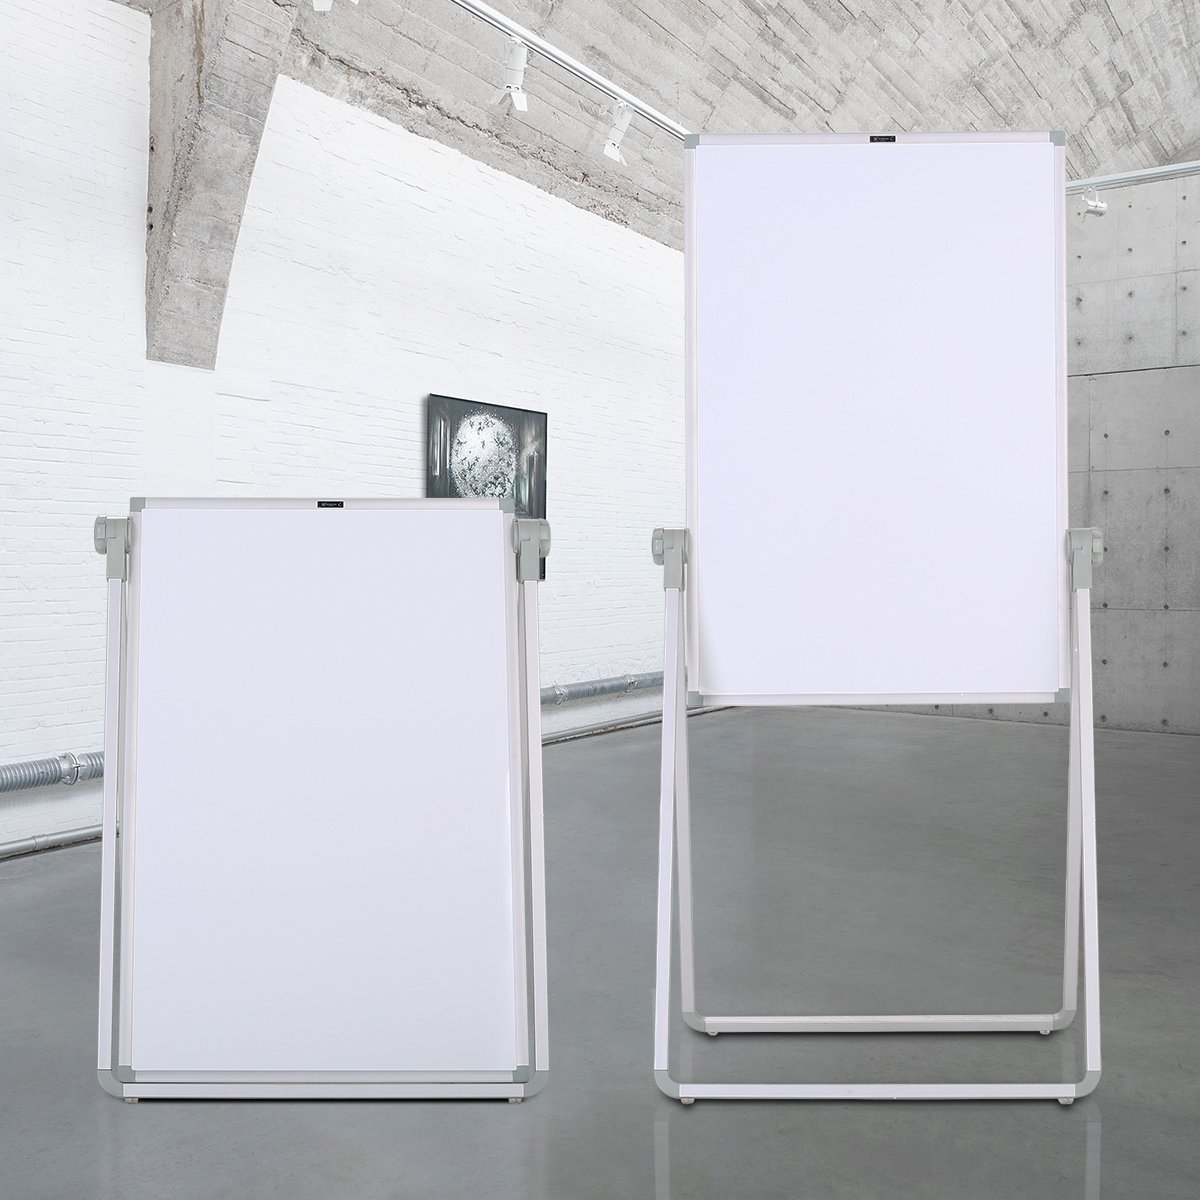 ZHIDIAN White Boards Magnetic Dry Erase Boards Stand 36×24 Inch Bulletin Board Aluminum Frame 2 Sides can Write.Highly Adjustable 360° Rotation